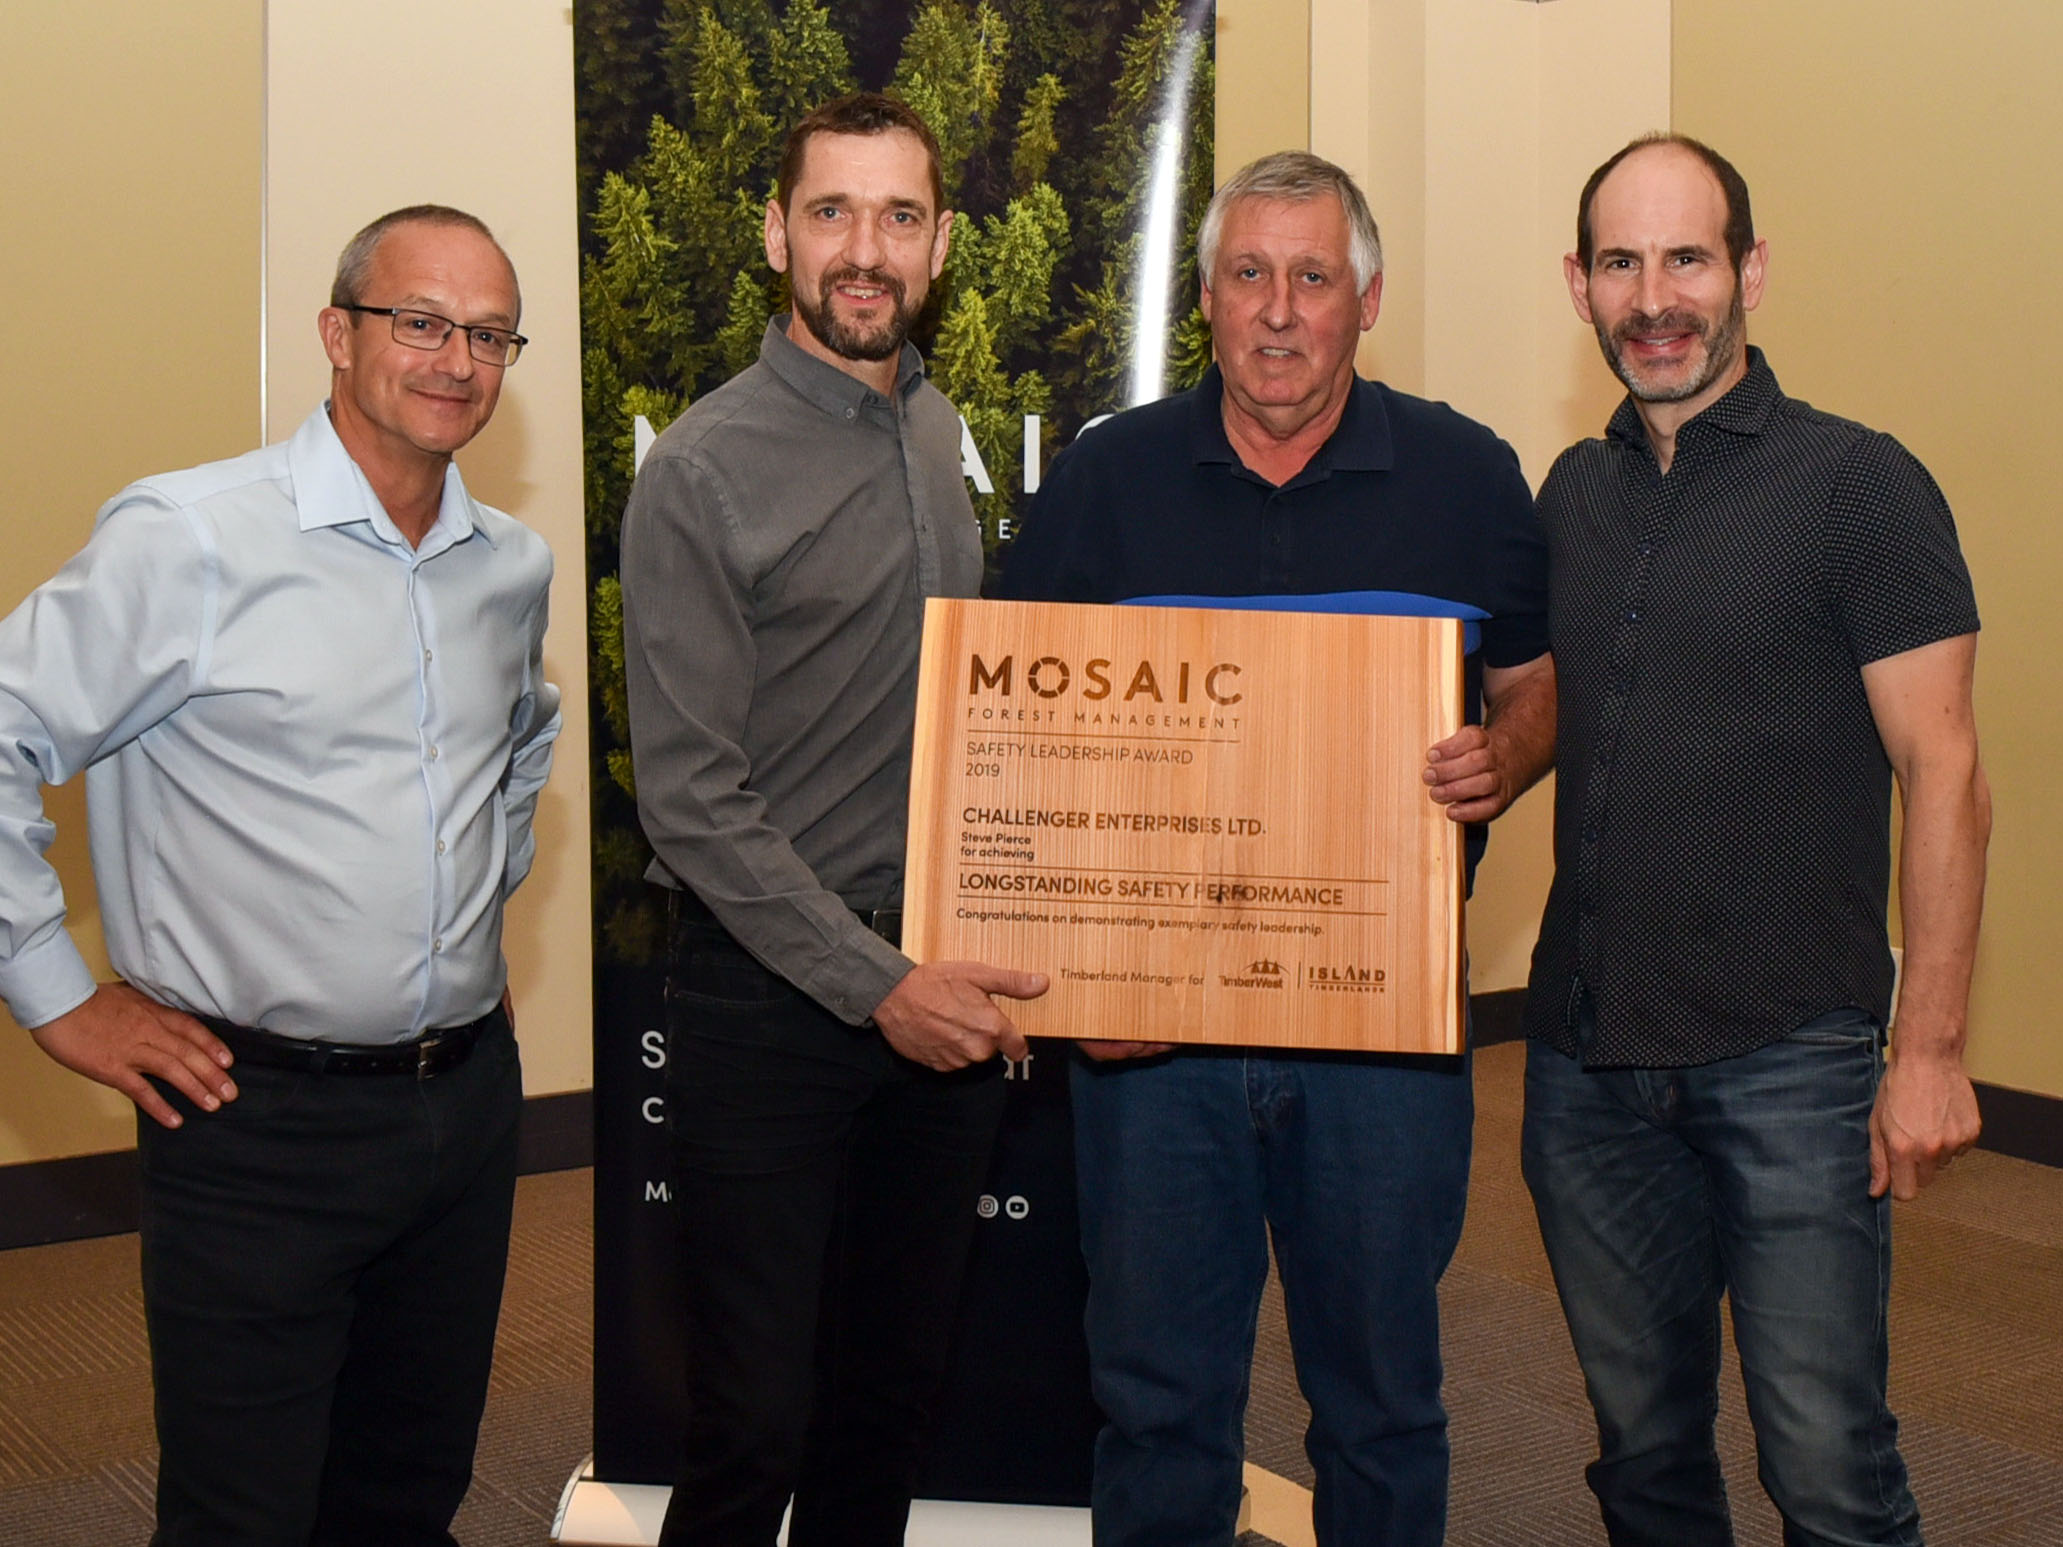 (l to r) John Shearing, Mosaic Forest Management's Director Health and Safety; James Luxmoore, Mosaic's Senior Manager, Log Purchase; award recipient, Steve Pierce, of Challenger Enterprises; and Mosaic's President and Chief Executive Officer, Jeff Zweig.